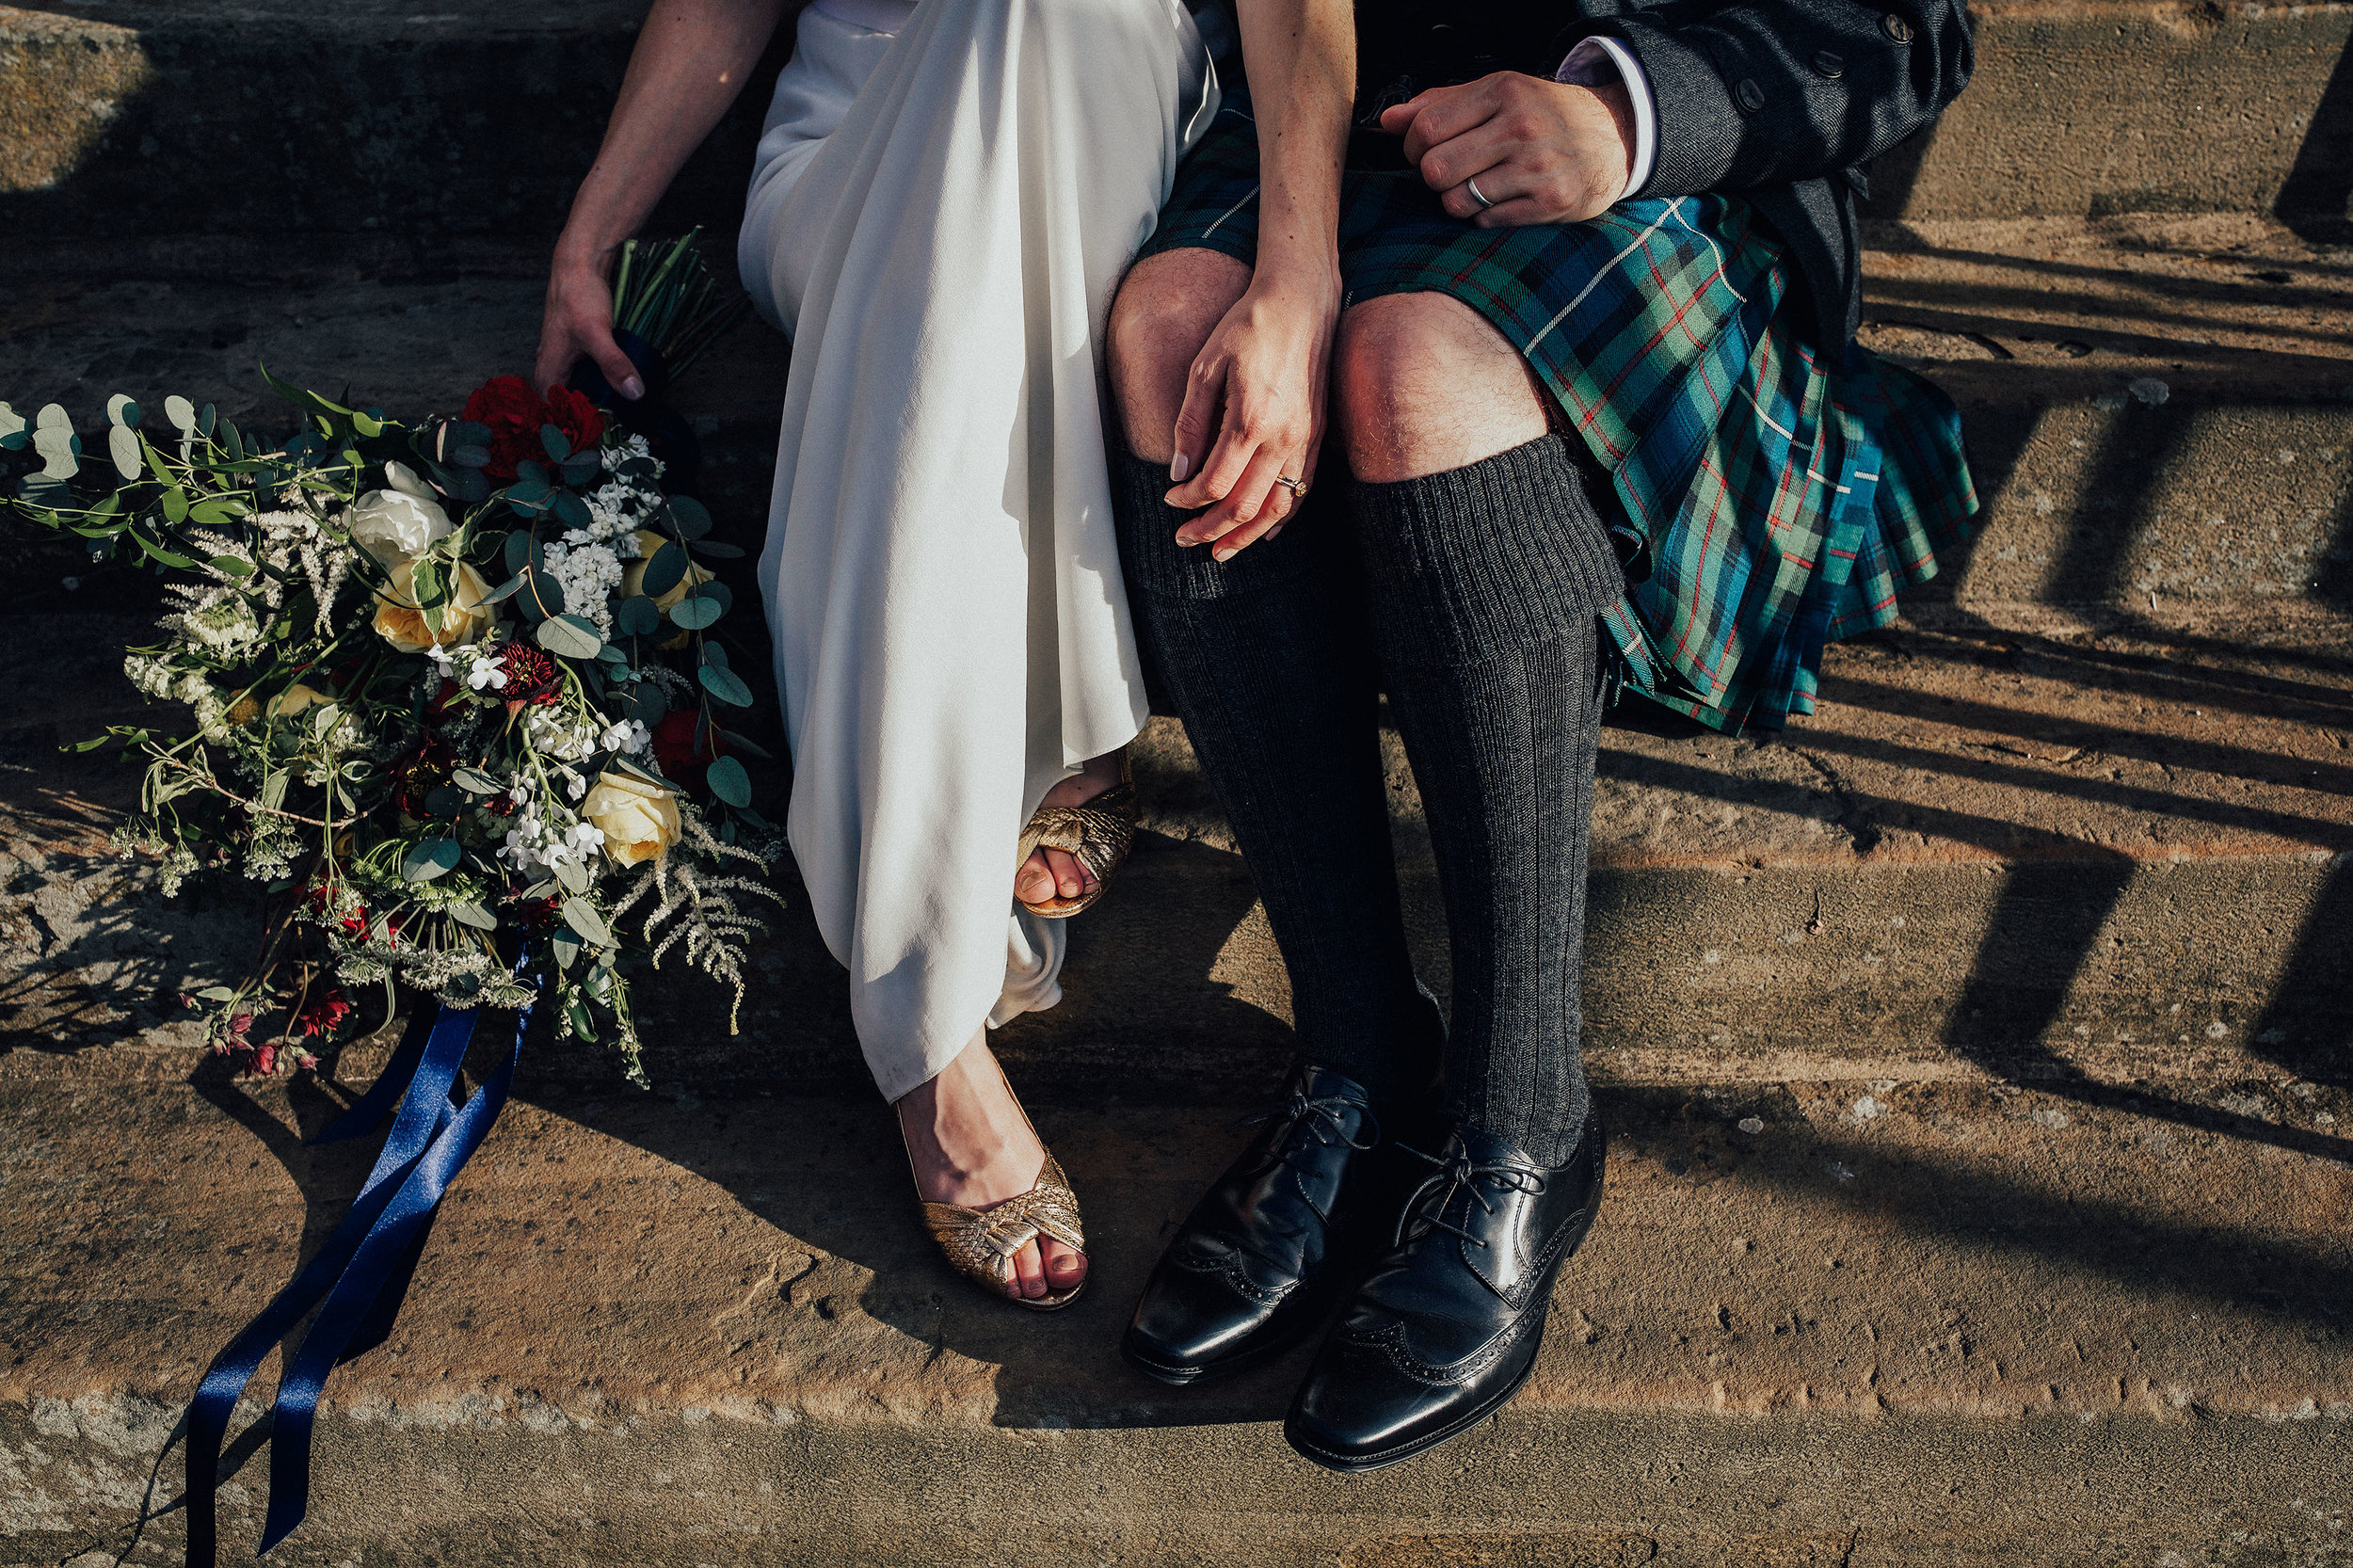 TIMBERYARD_EDINBURGH_WEDDING_PJ_PHILLIPS_PHOTOGRAPHY_183.jpg